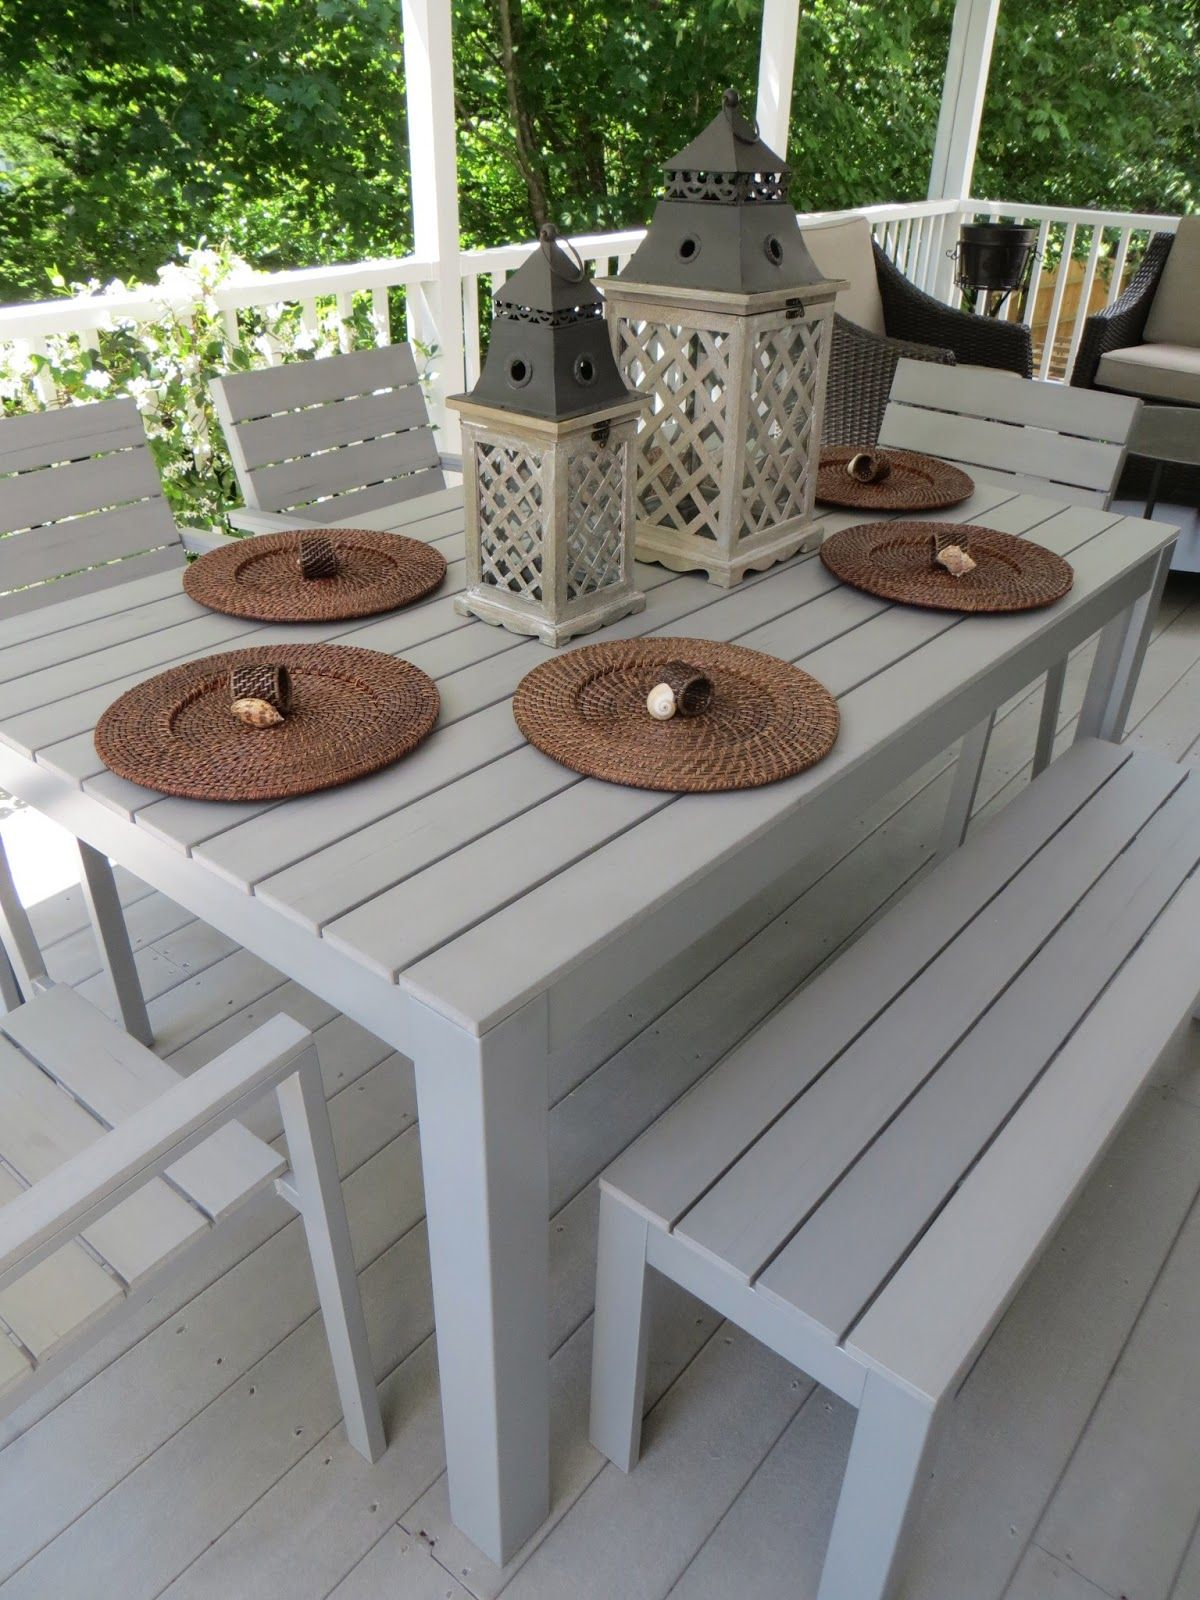 Enjoyable Falster Ikea I Love The Looks Of This Outdoor Dining Set Andrewgaddart Wooden Chair Designs For Living Room Andrewgaddartcom